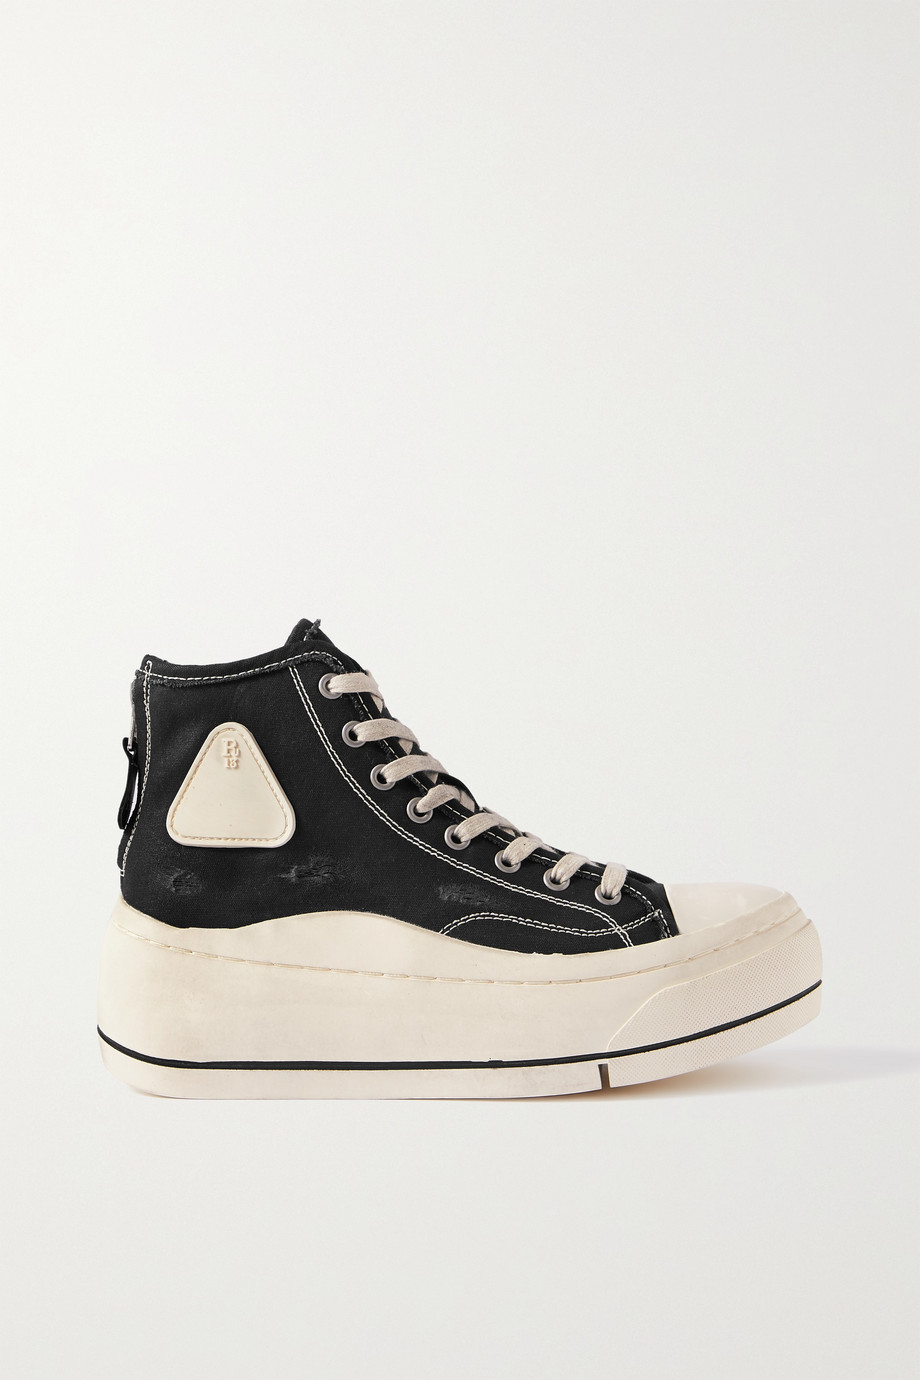 R13 Distressed canvas high-top platform sneakers